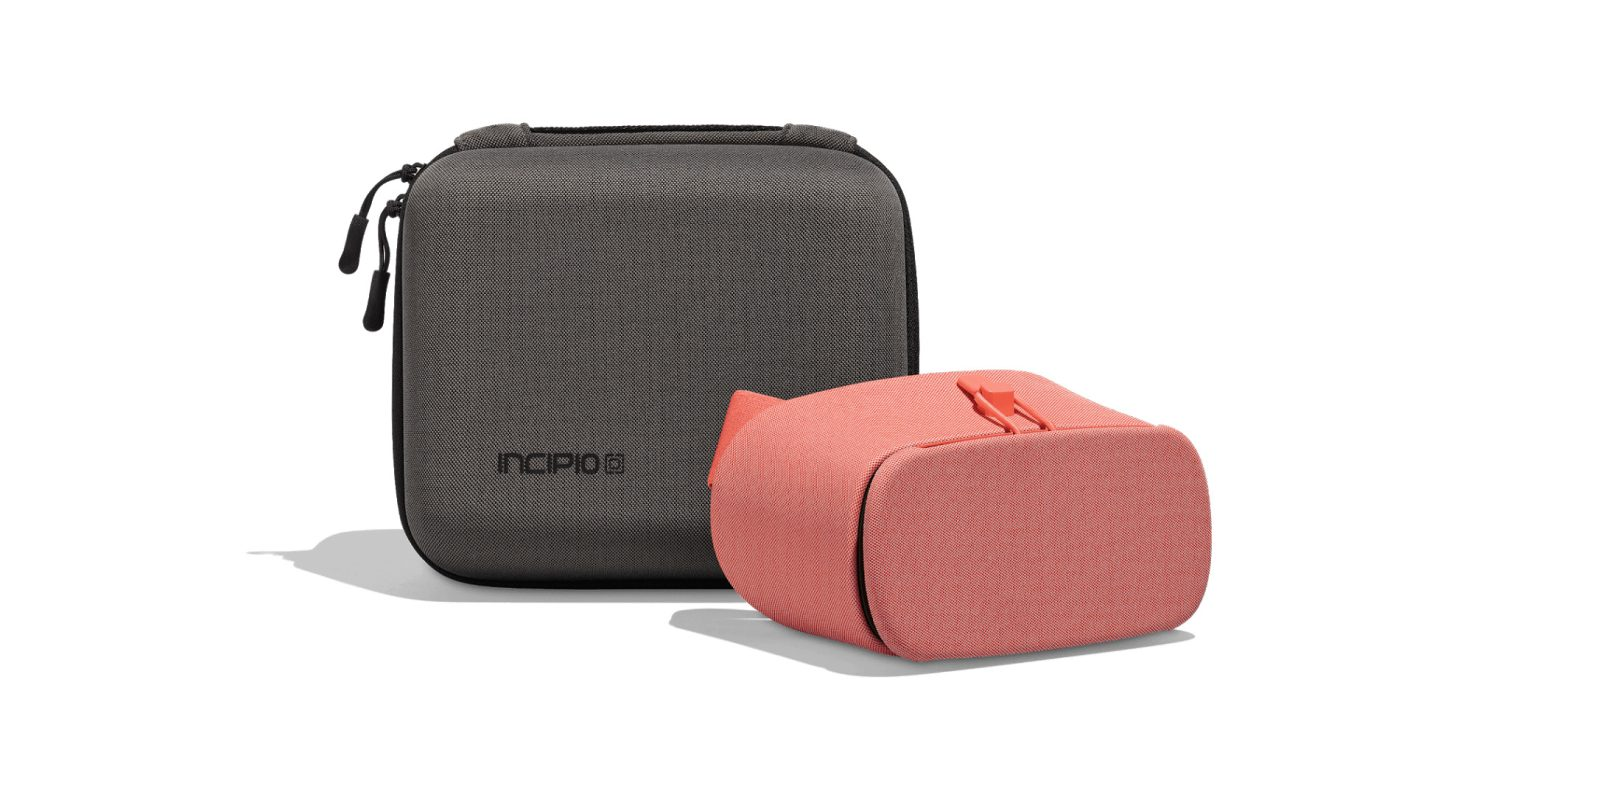 big sale c10e6 65619 Incipio Carrying Case for Daydream View pops up in the Google Store ...